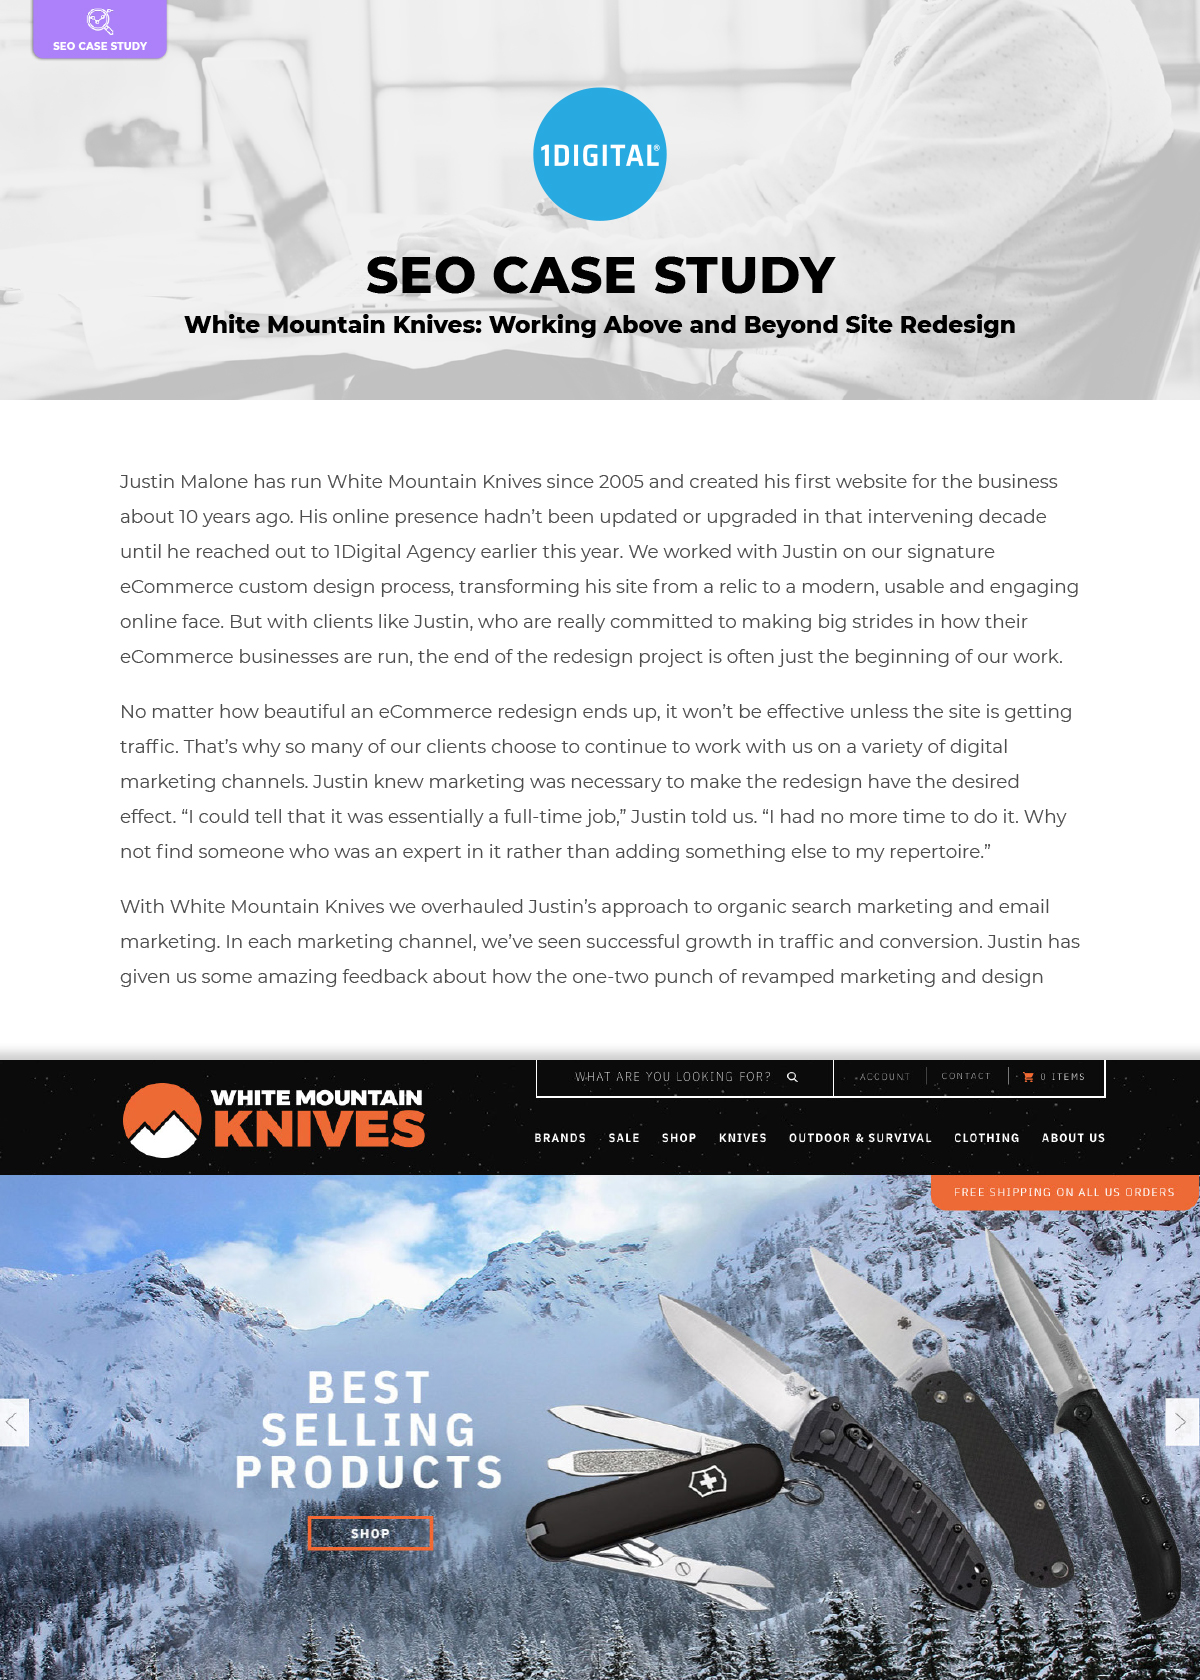 White Mountain Knives: Working Above and Beyond Site Redesign